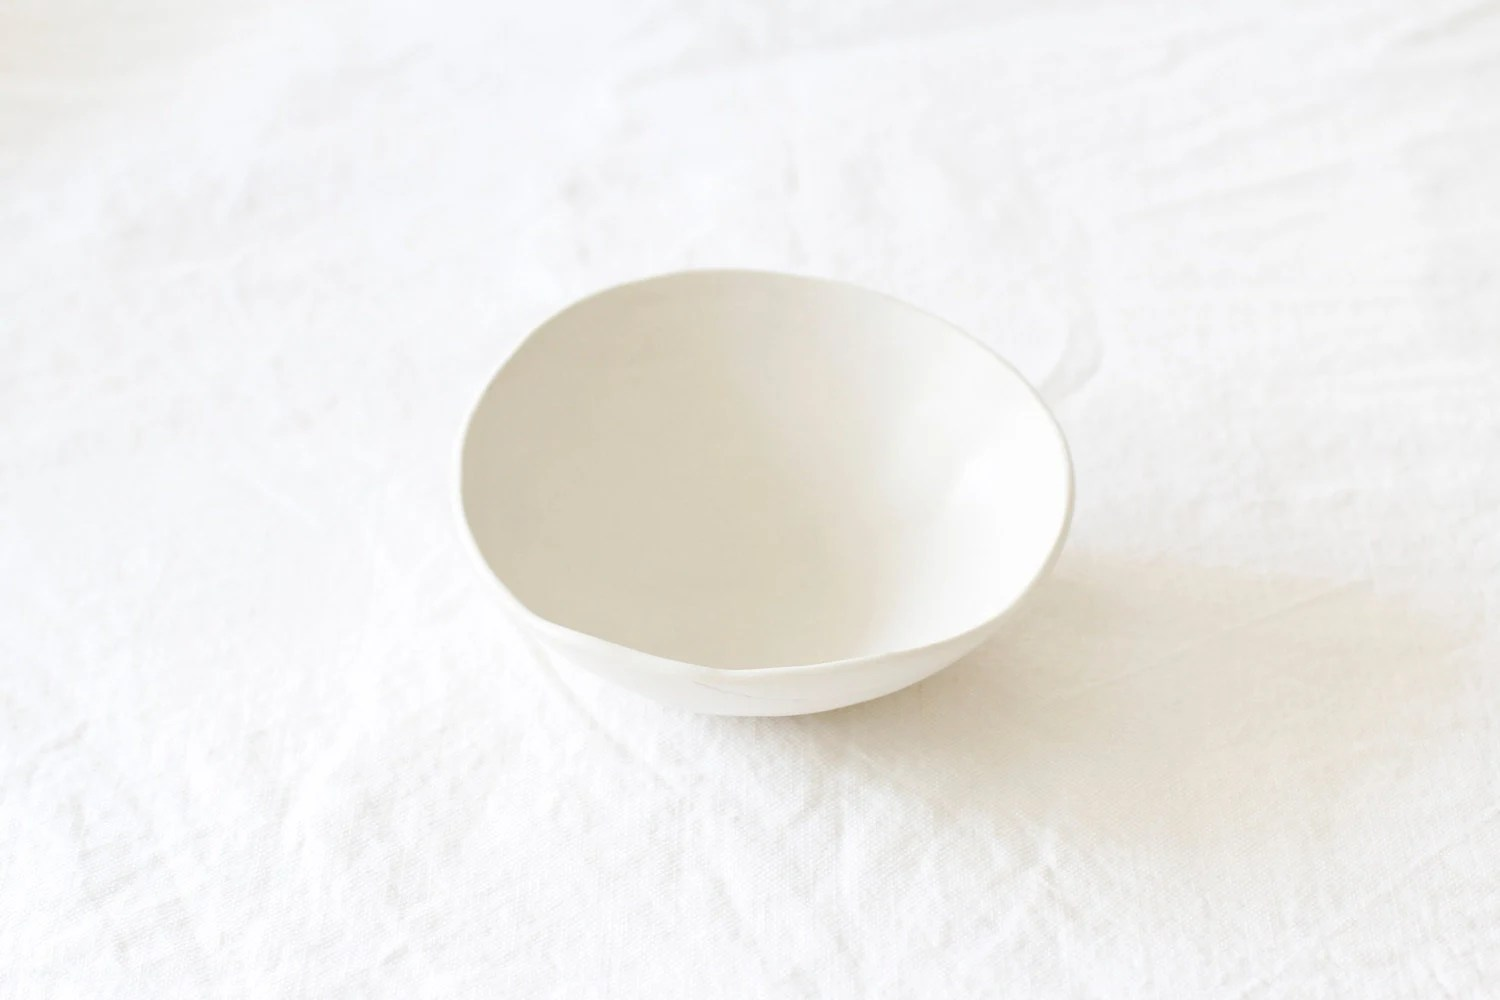 Handmade White Ceramic Bowl - lookslikewhite